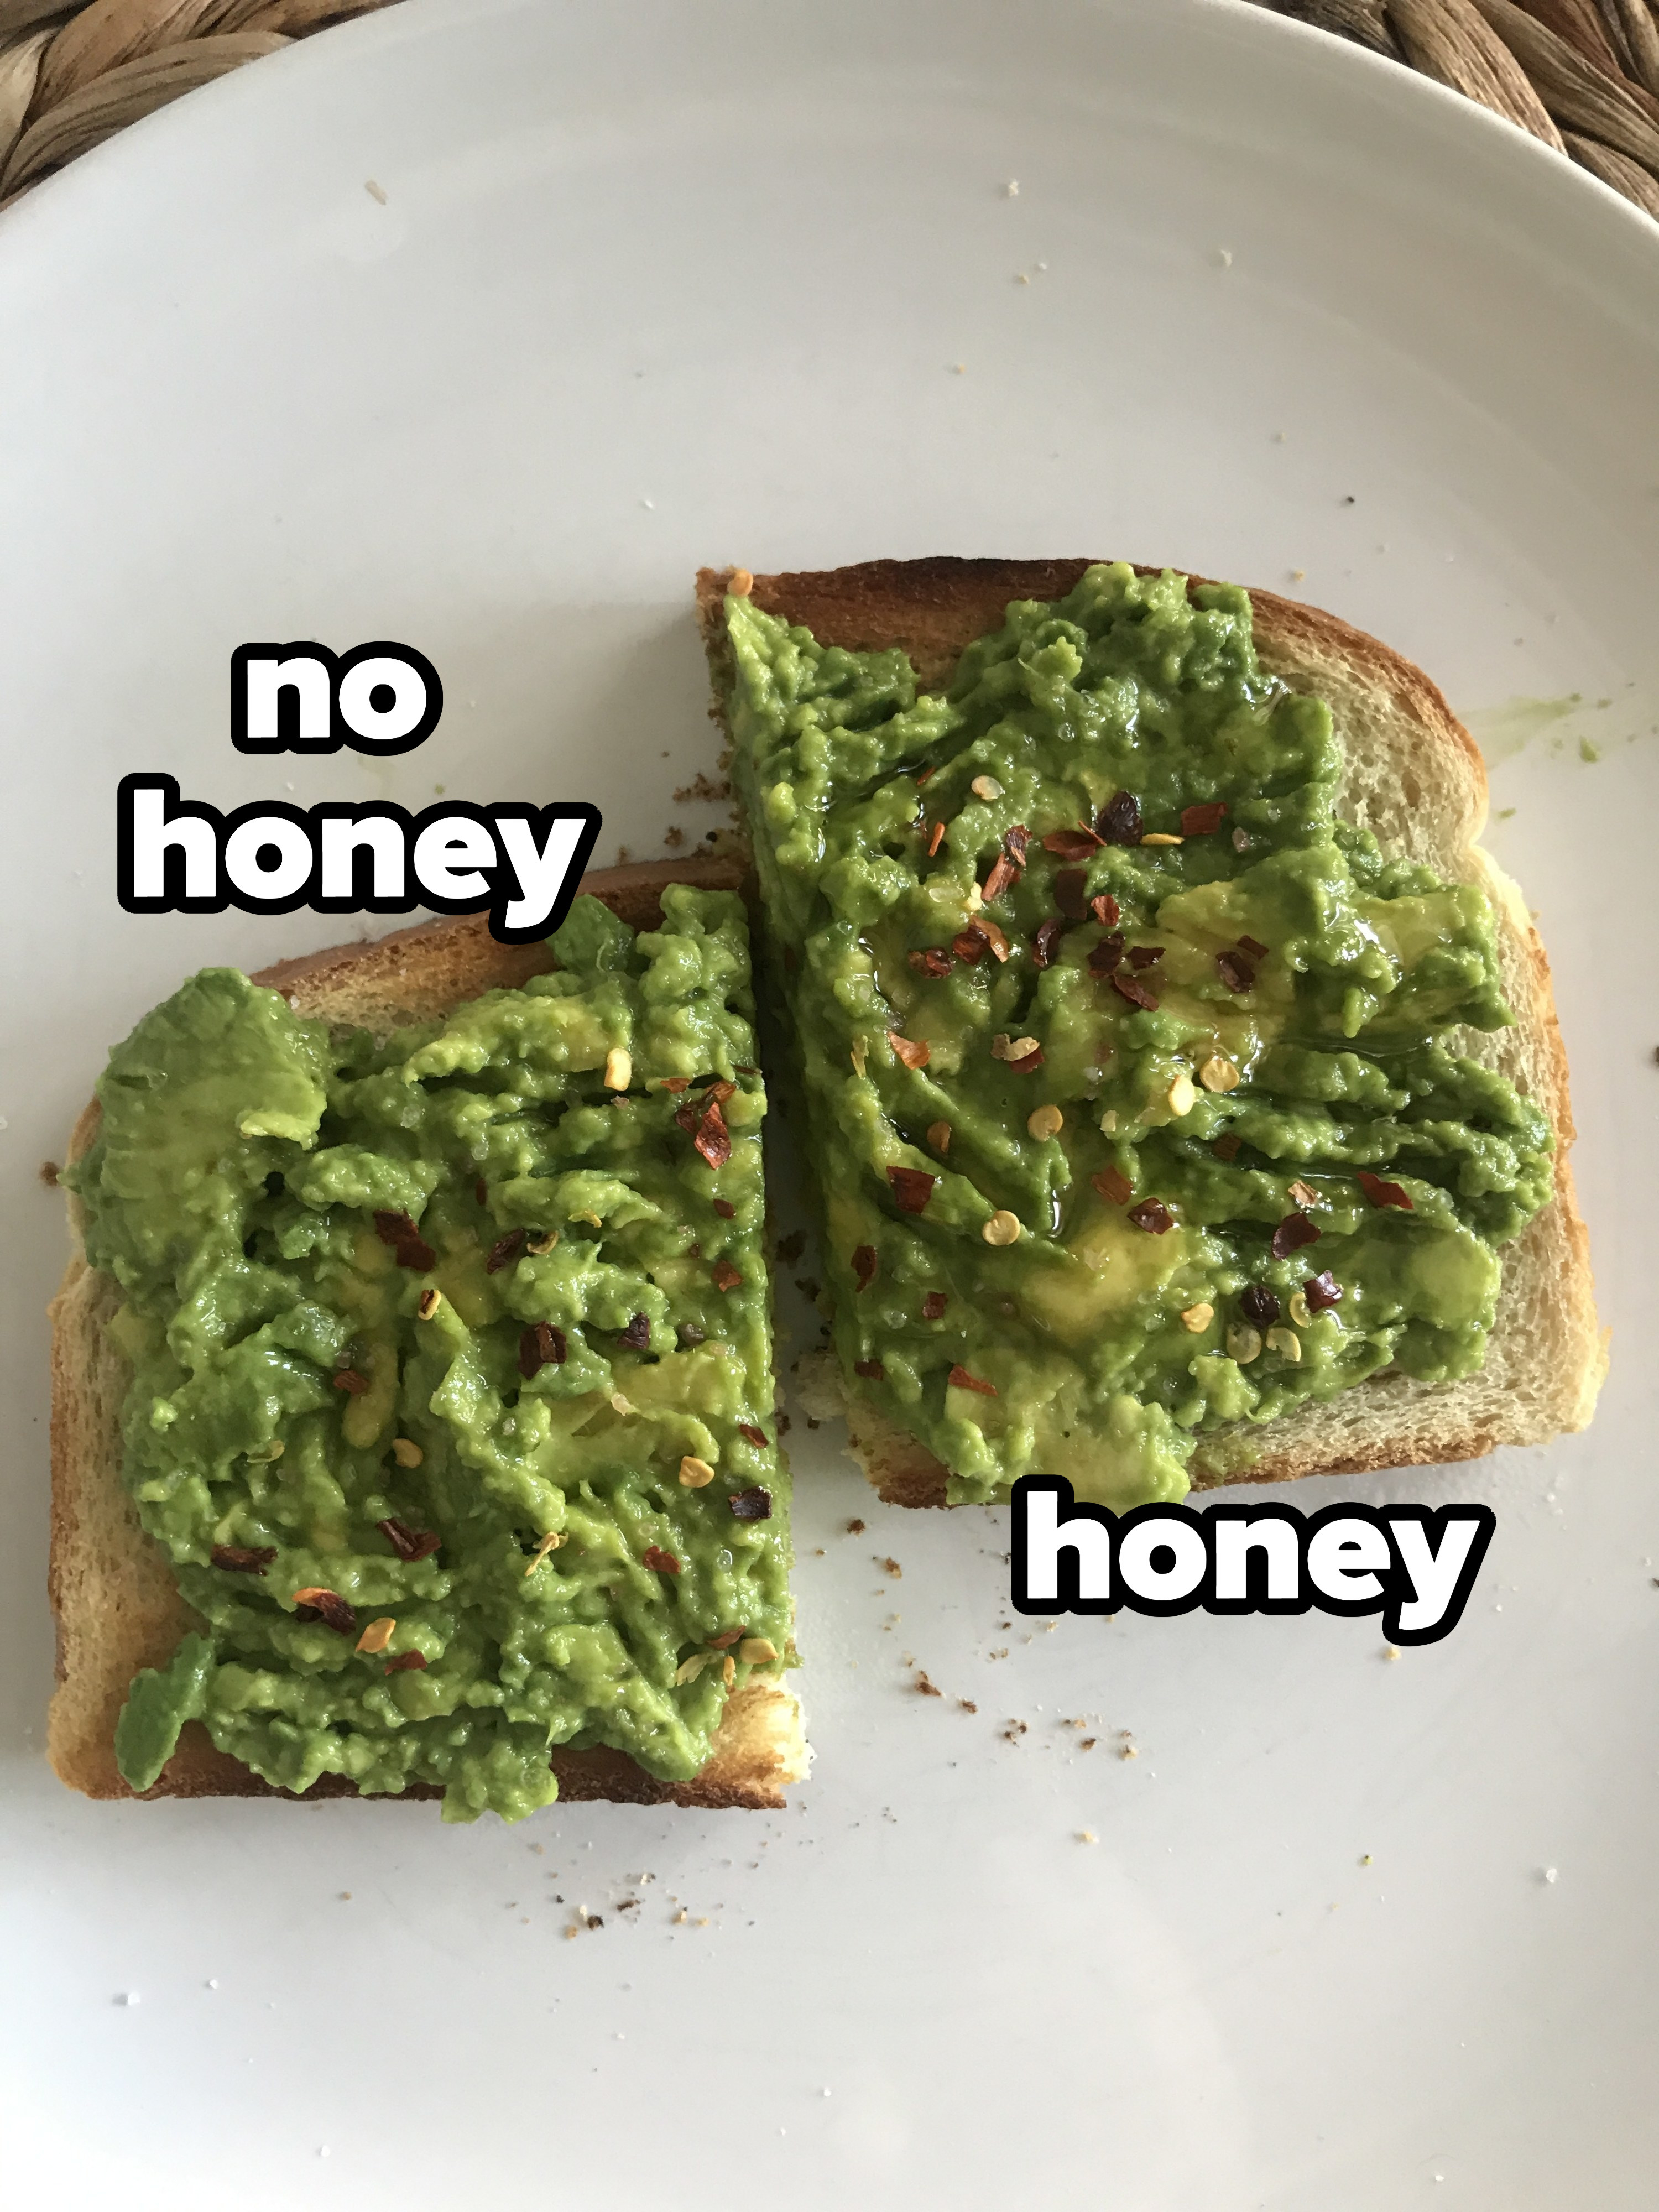 Avocado toast with honey and without honey